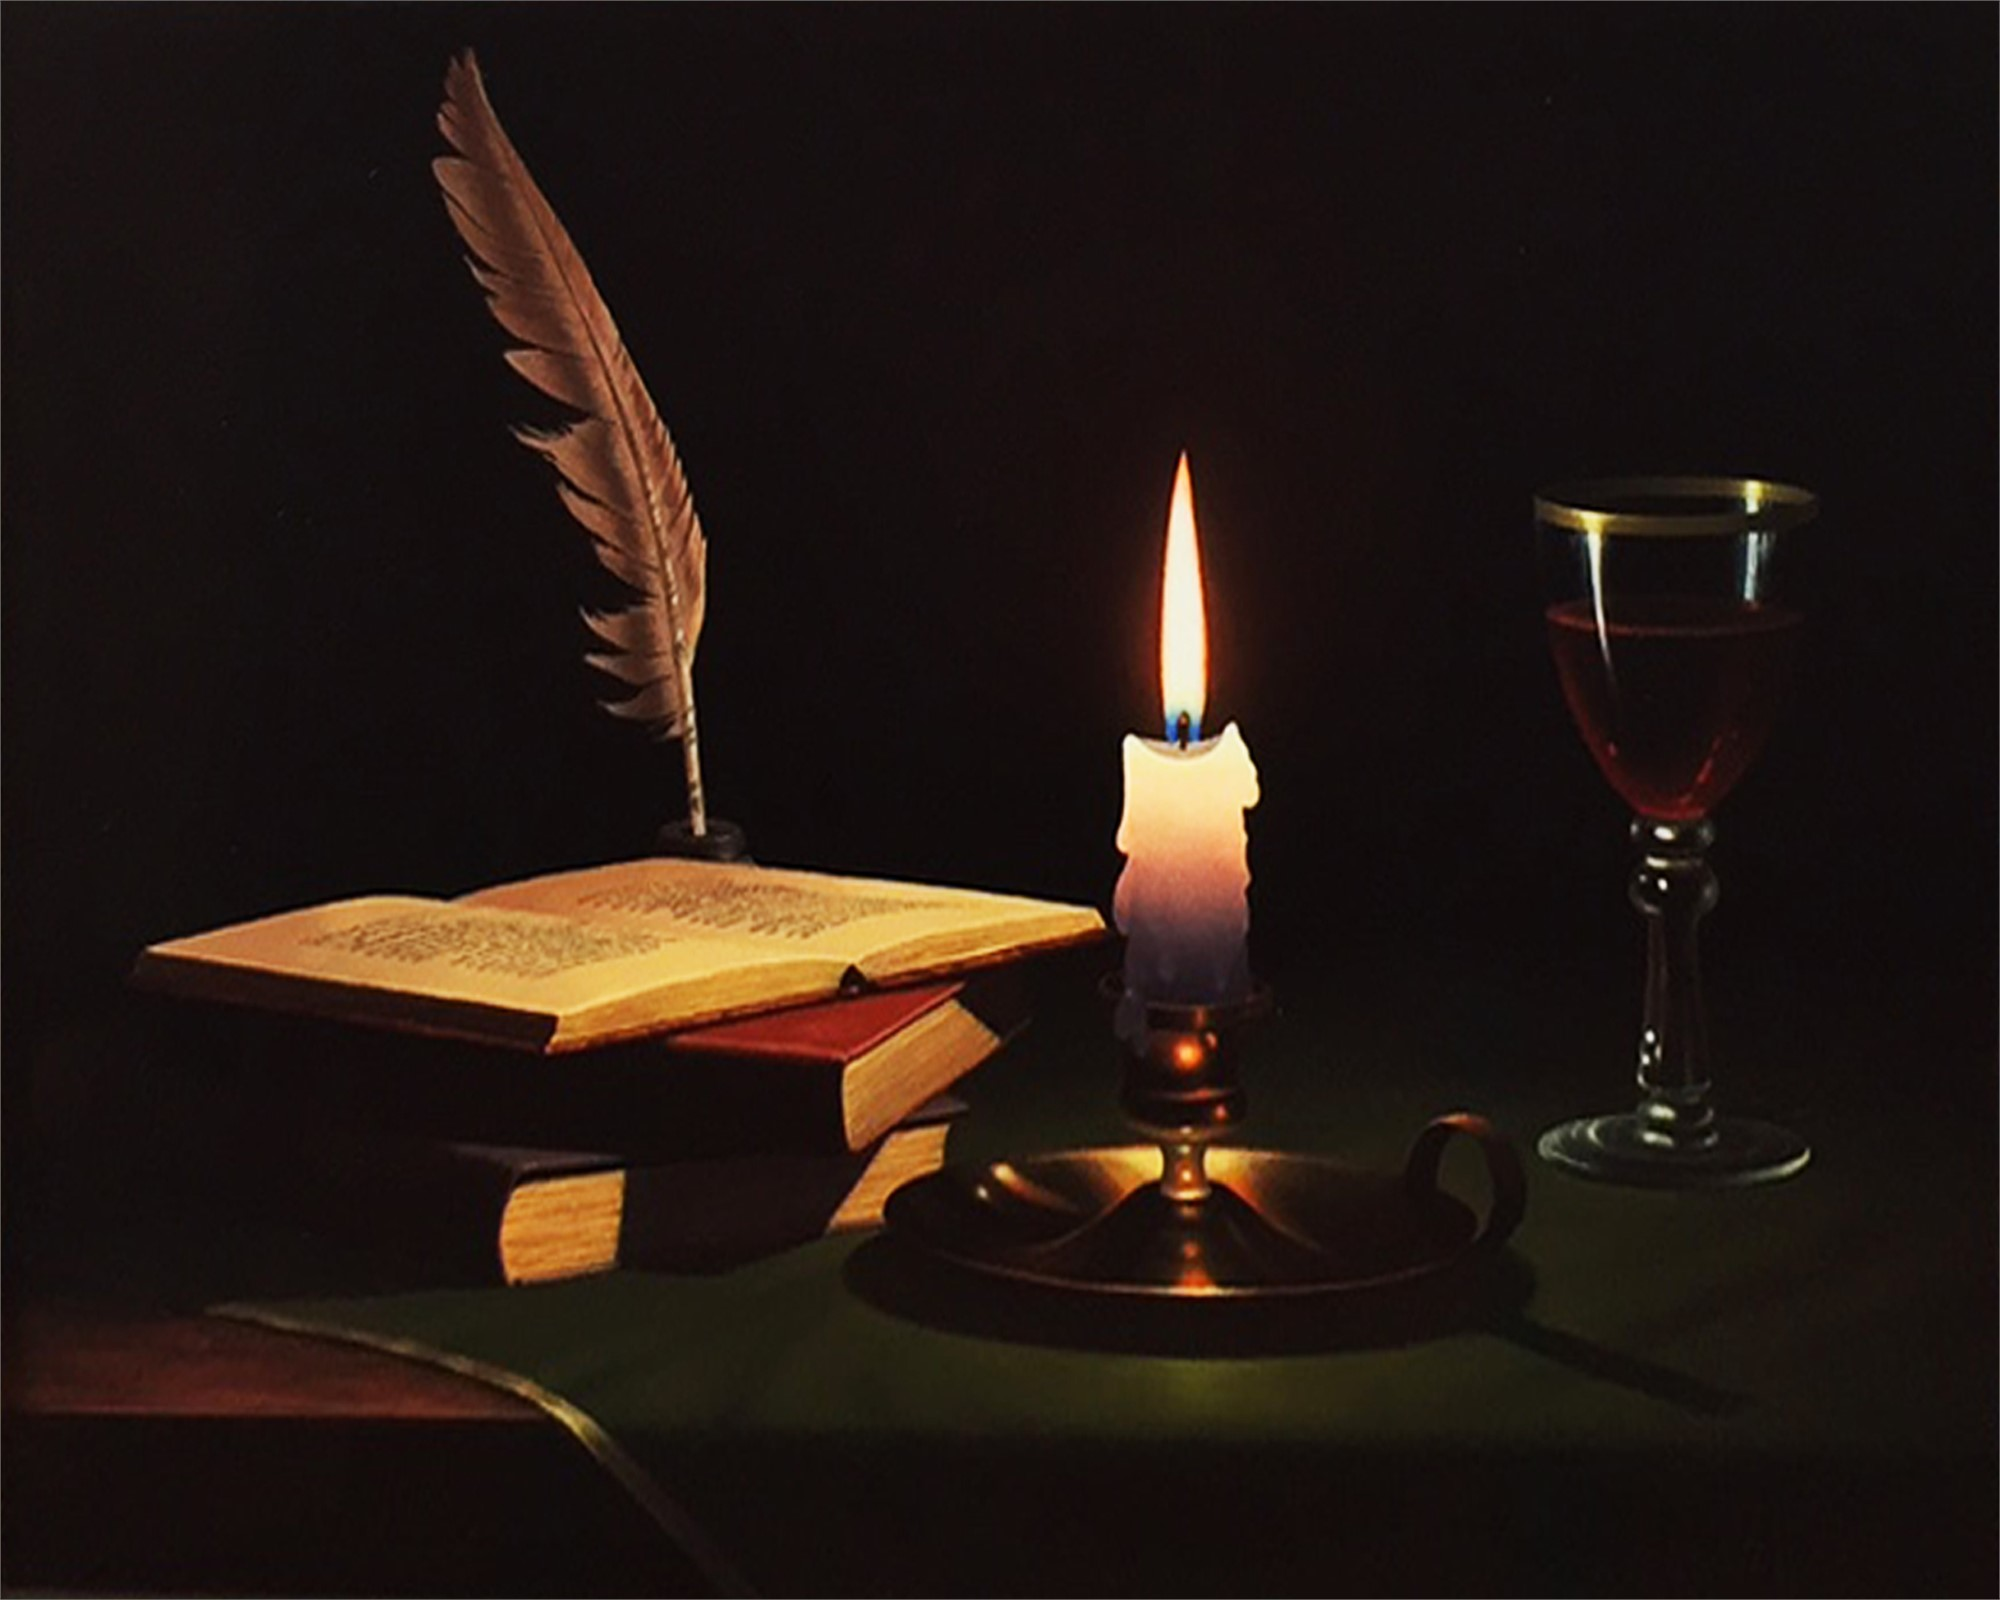 STILL LIFE WITH CANDLE by DIBERT